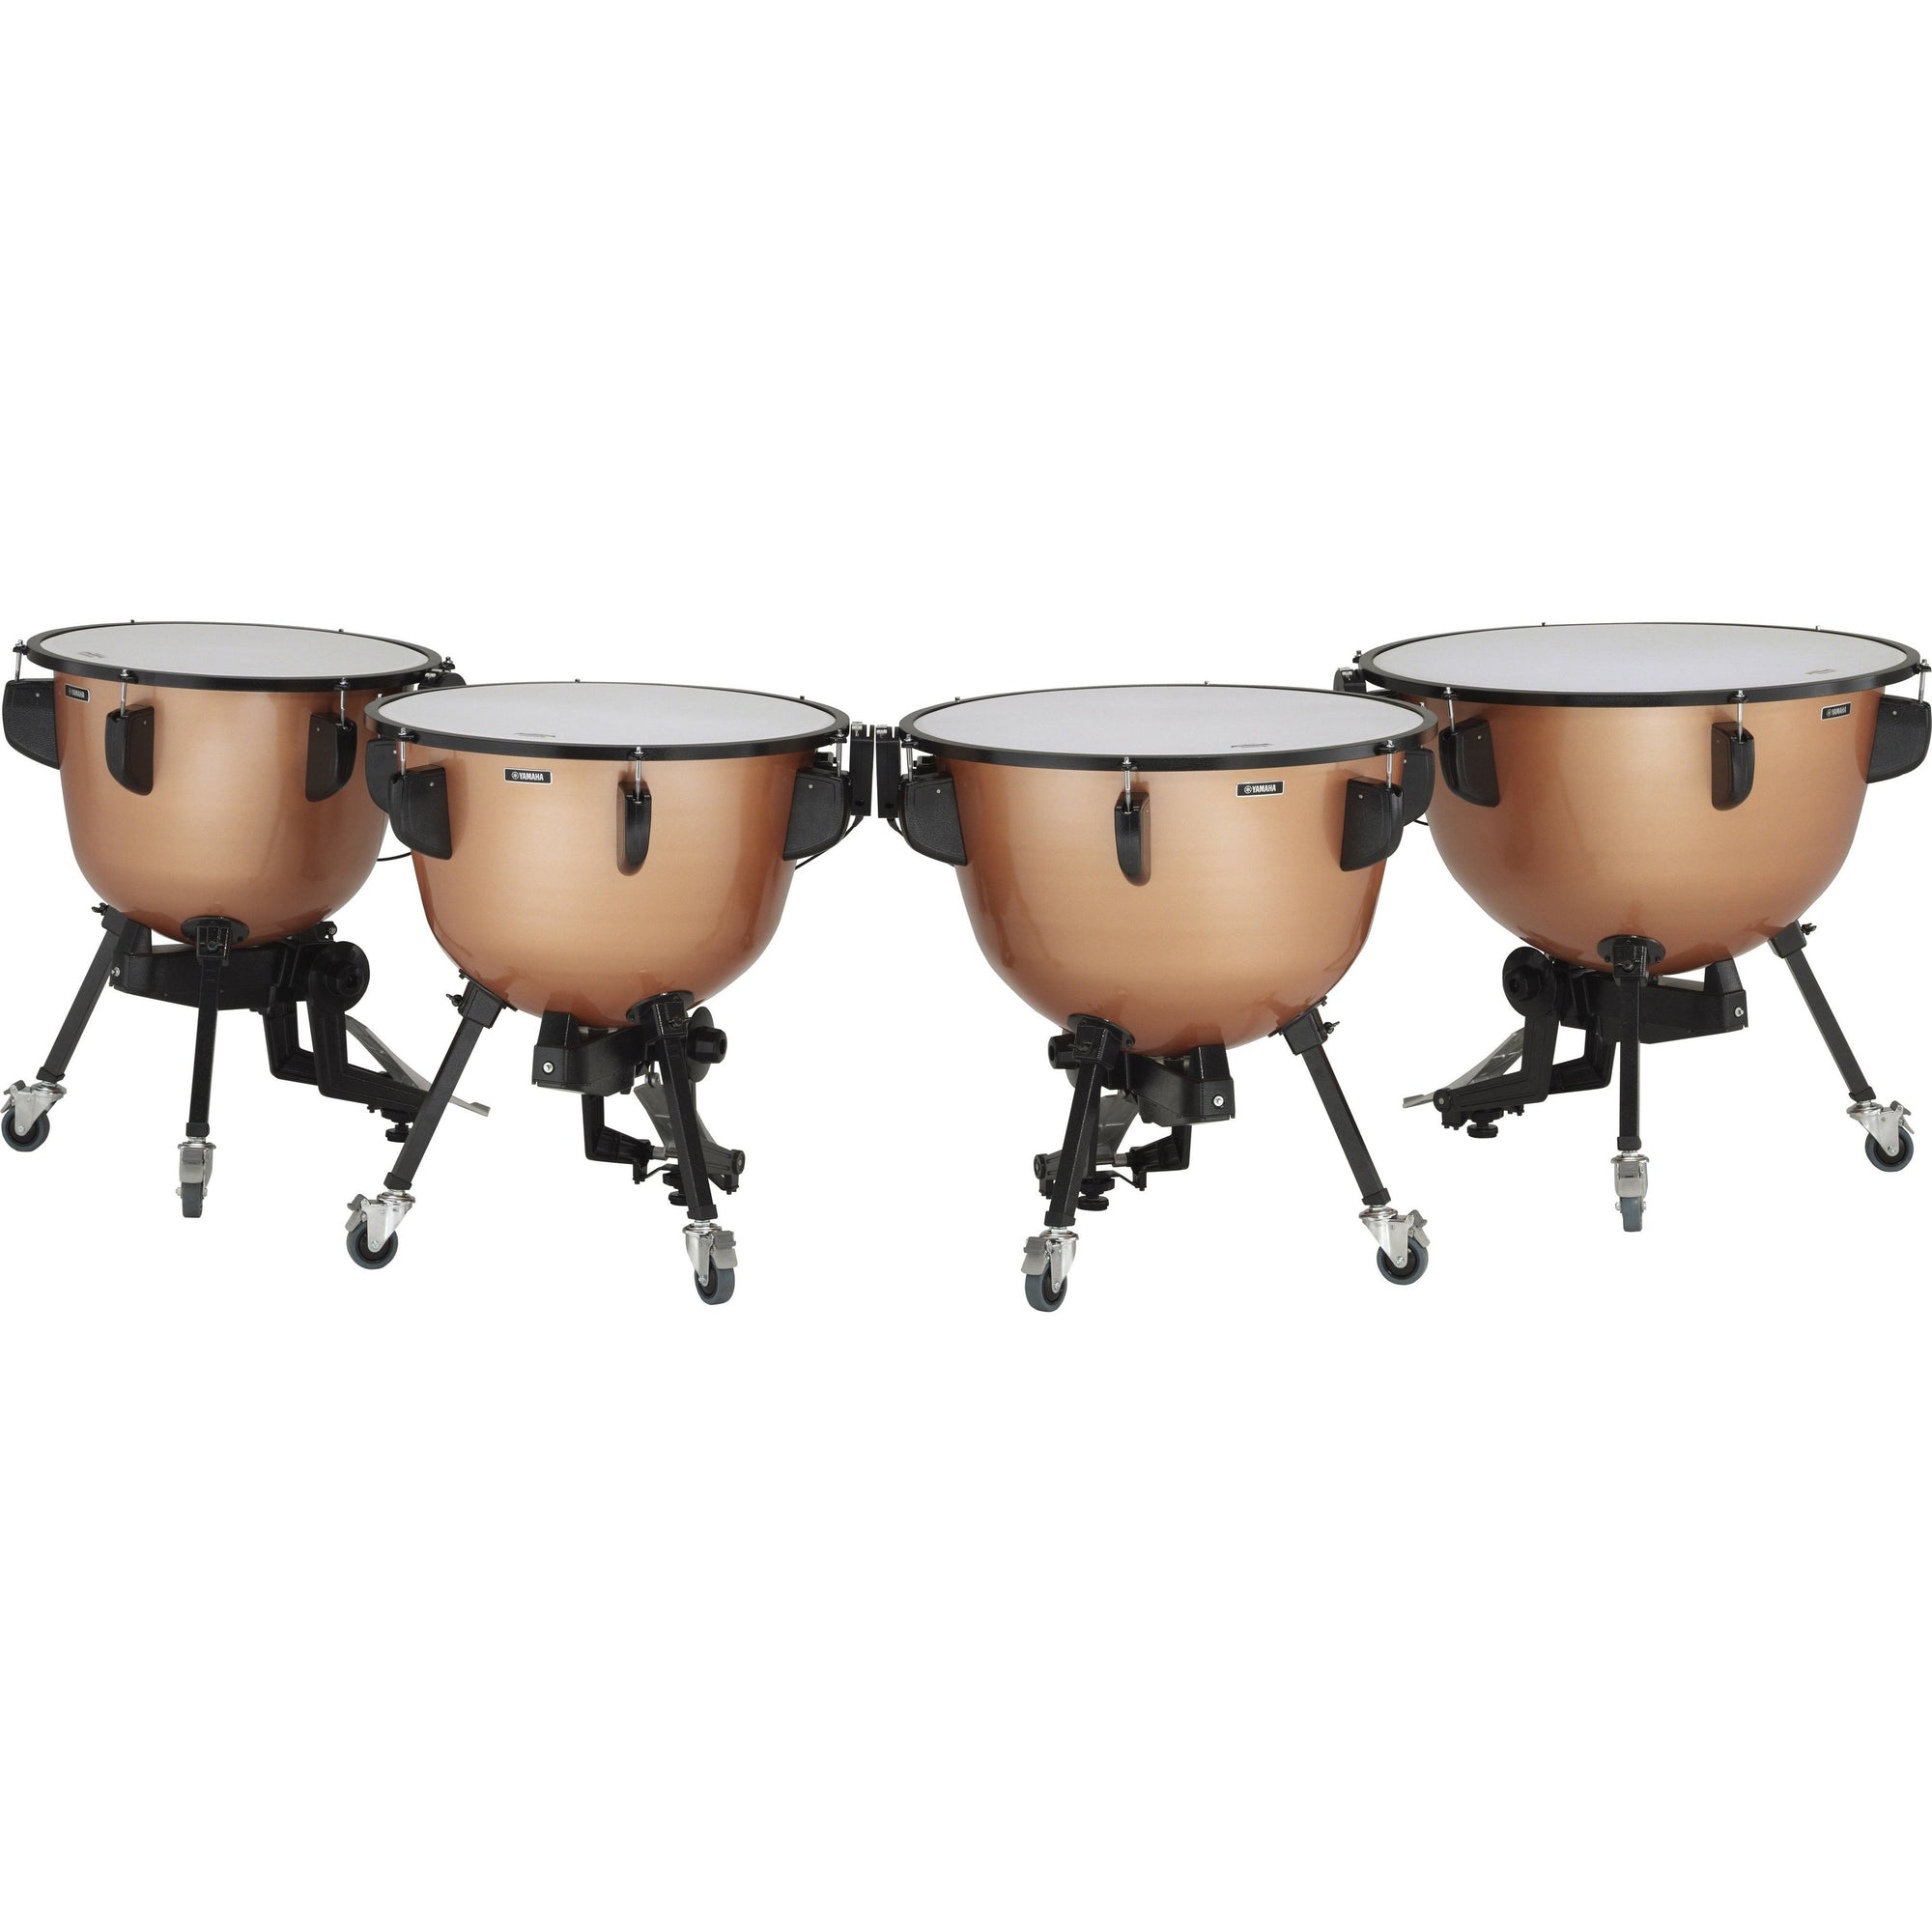 Yamaha - TP-3300 Series - Portable Pedal Timpanis with Aluminium Bowl-Percussion-Yamaha-Music Elements